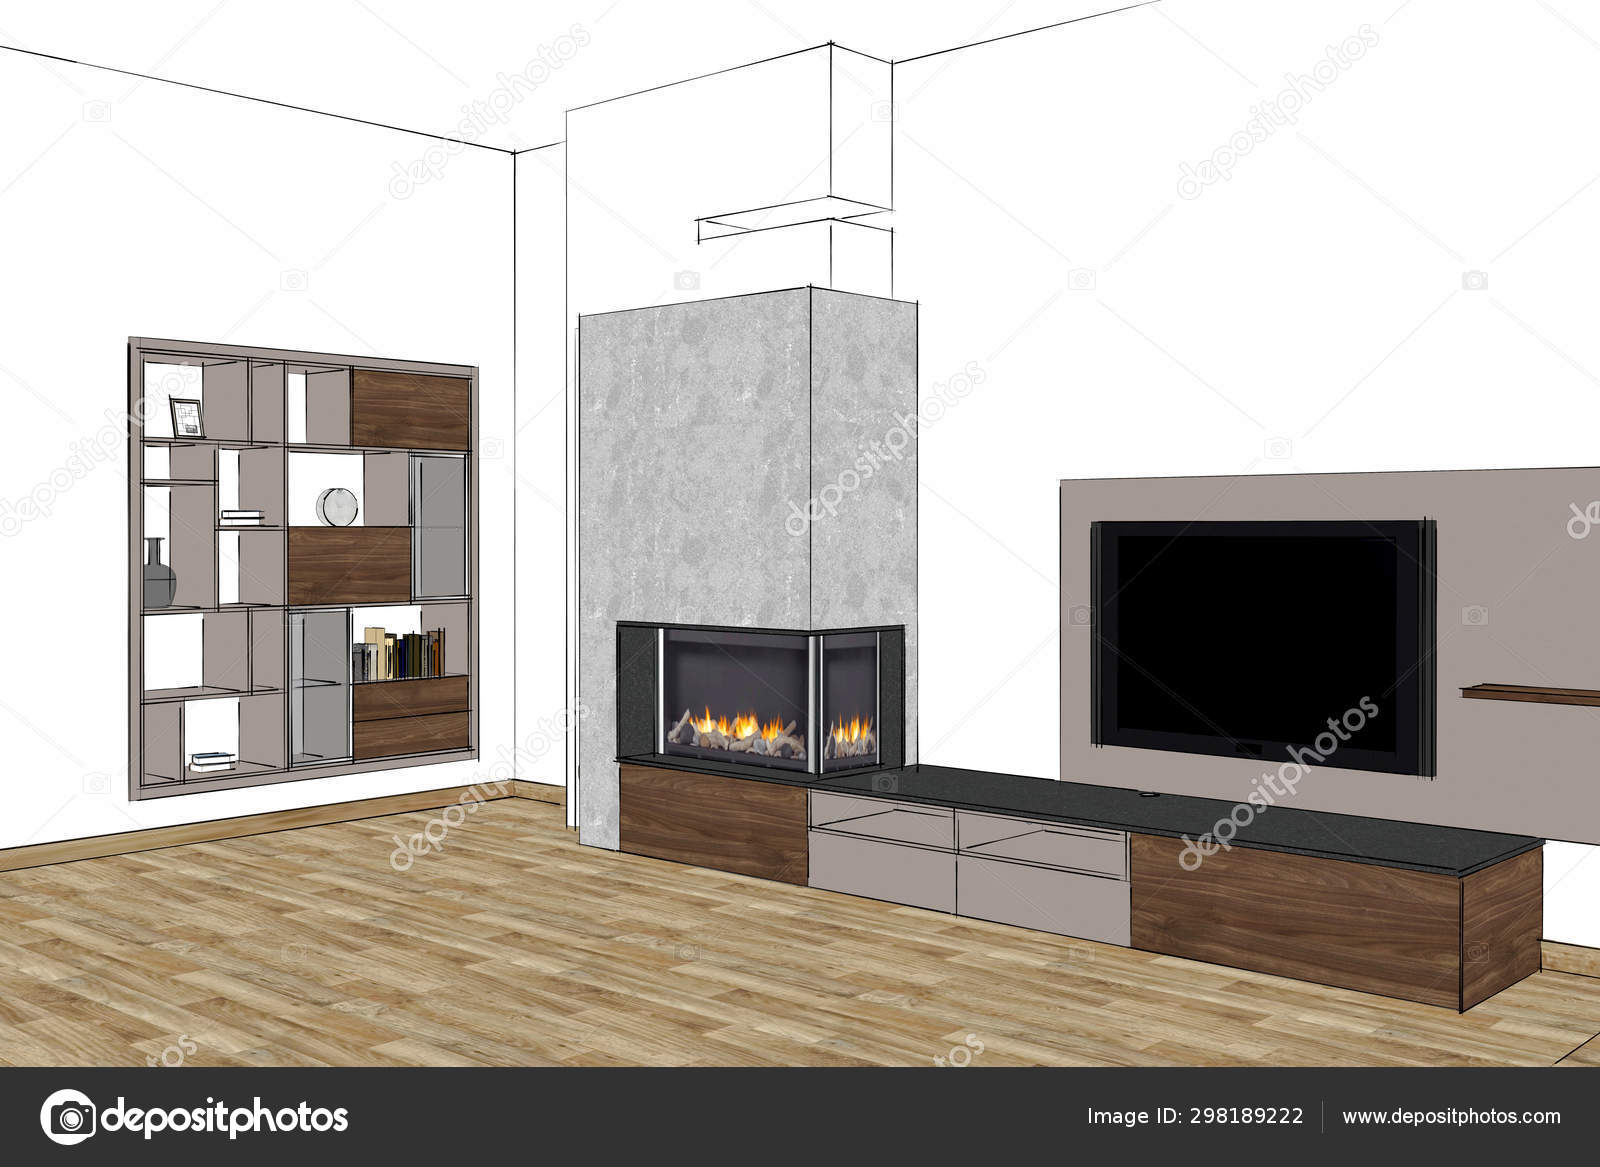 Rendering Living Room Modern Fireplace Furniture Interior Design Stand Open Stock Photo C Richard Salamander 298189222